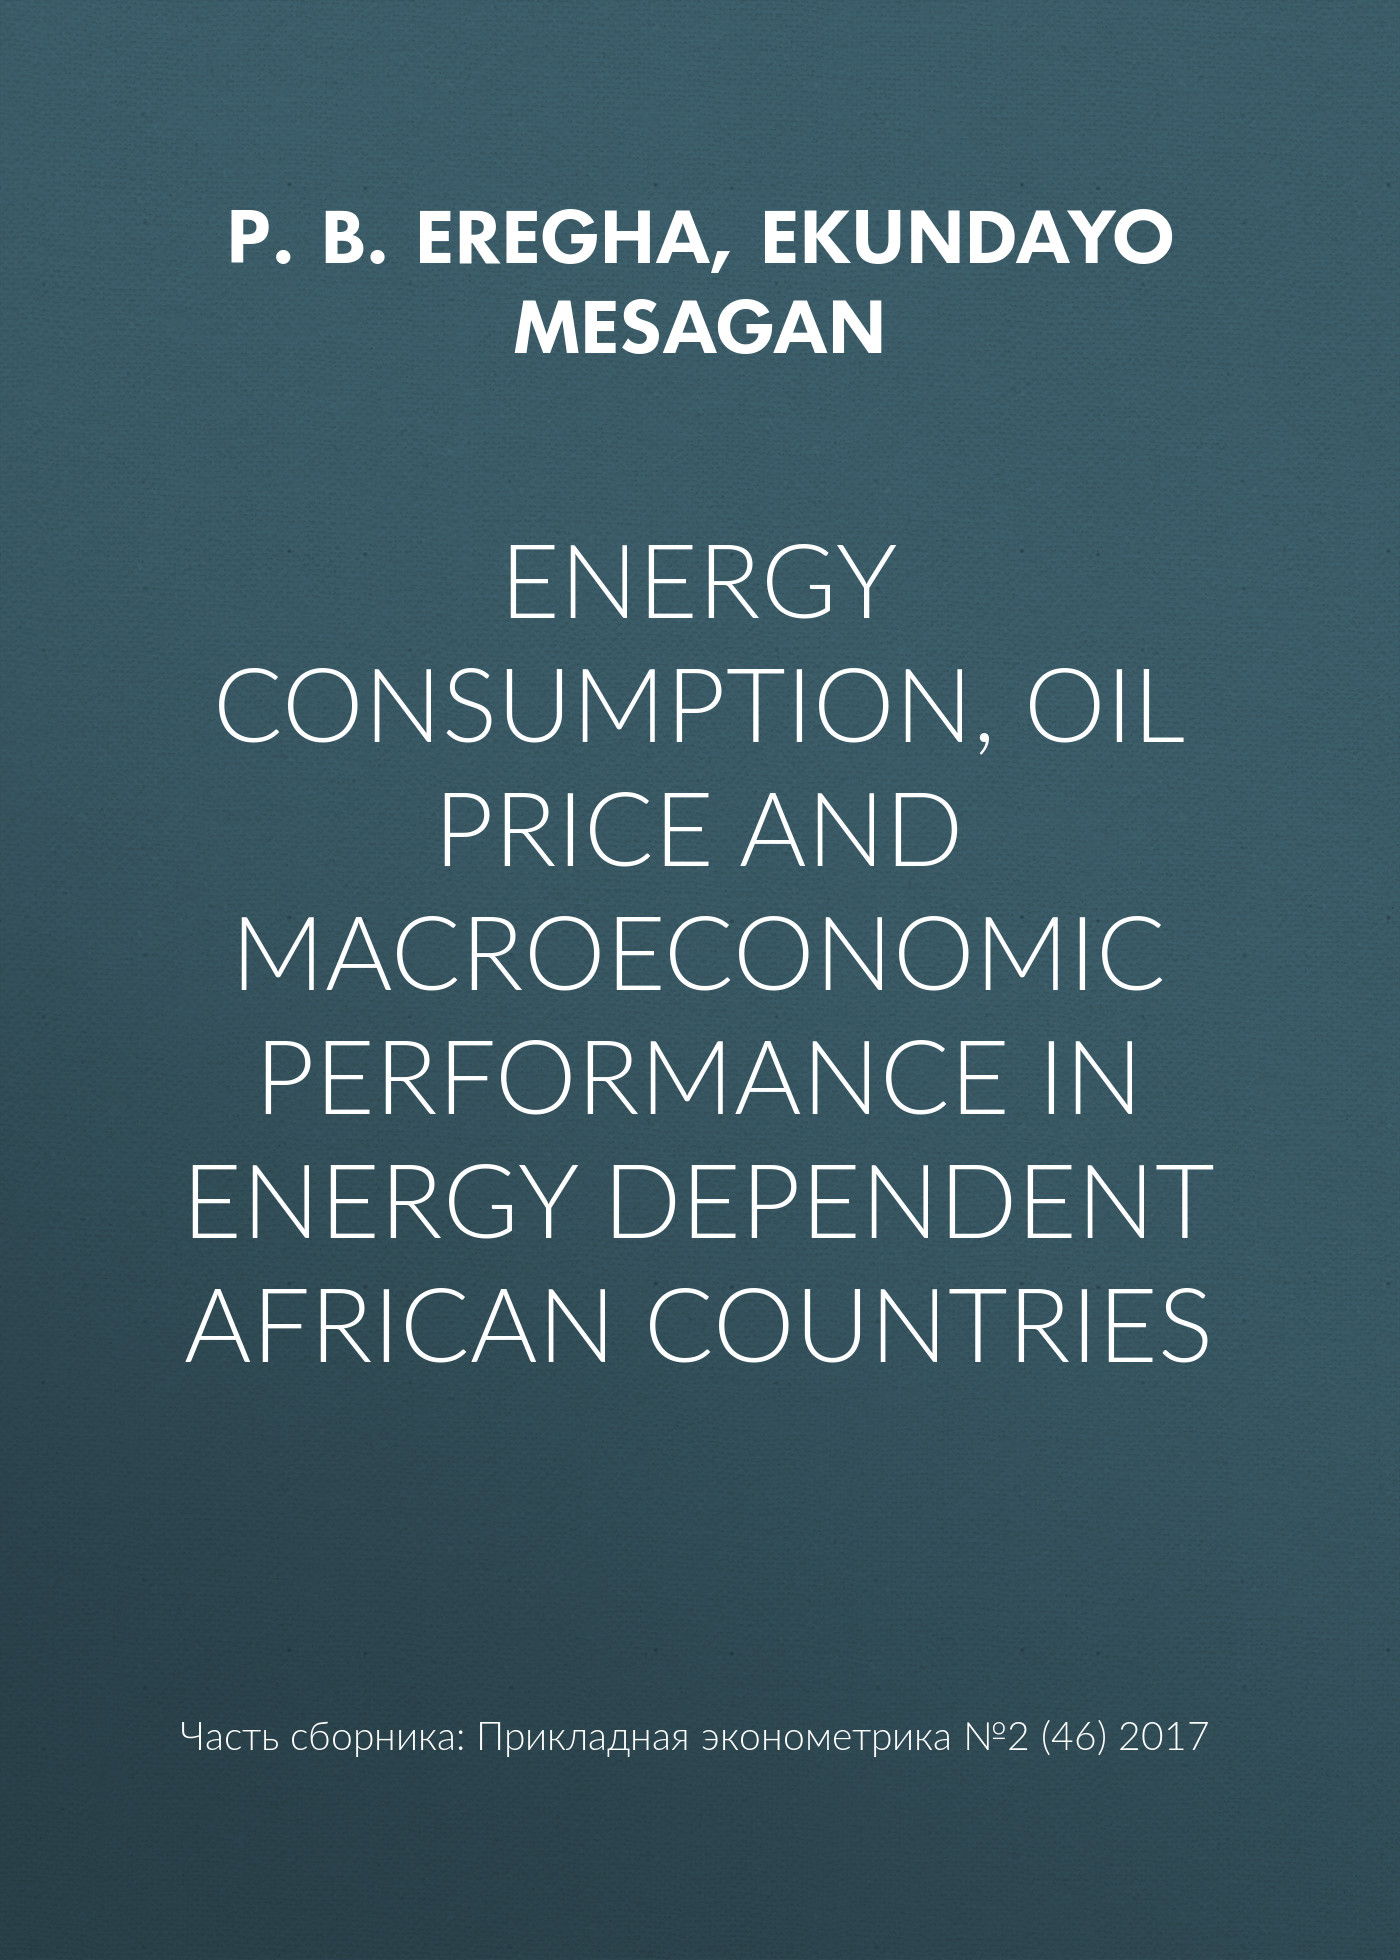 P. B. Eregha Energy consumption, oil price and macroeconomic performance in energy dependent African countries power energy consumption watt meter uk plug